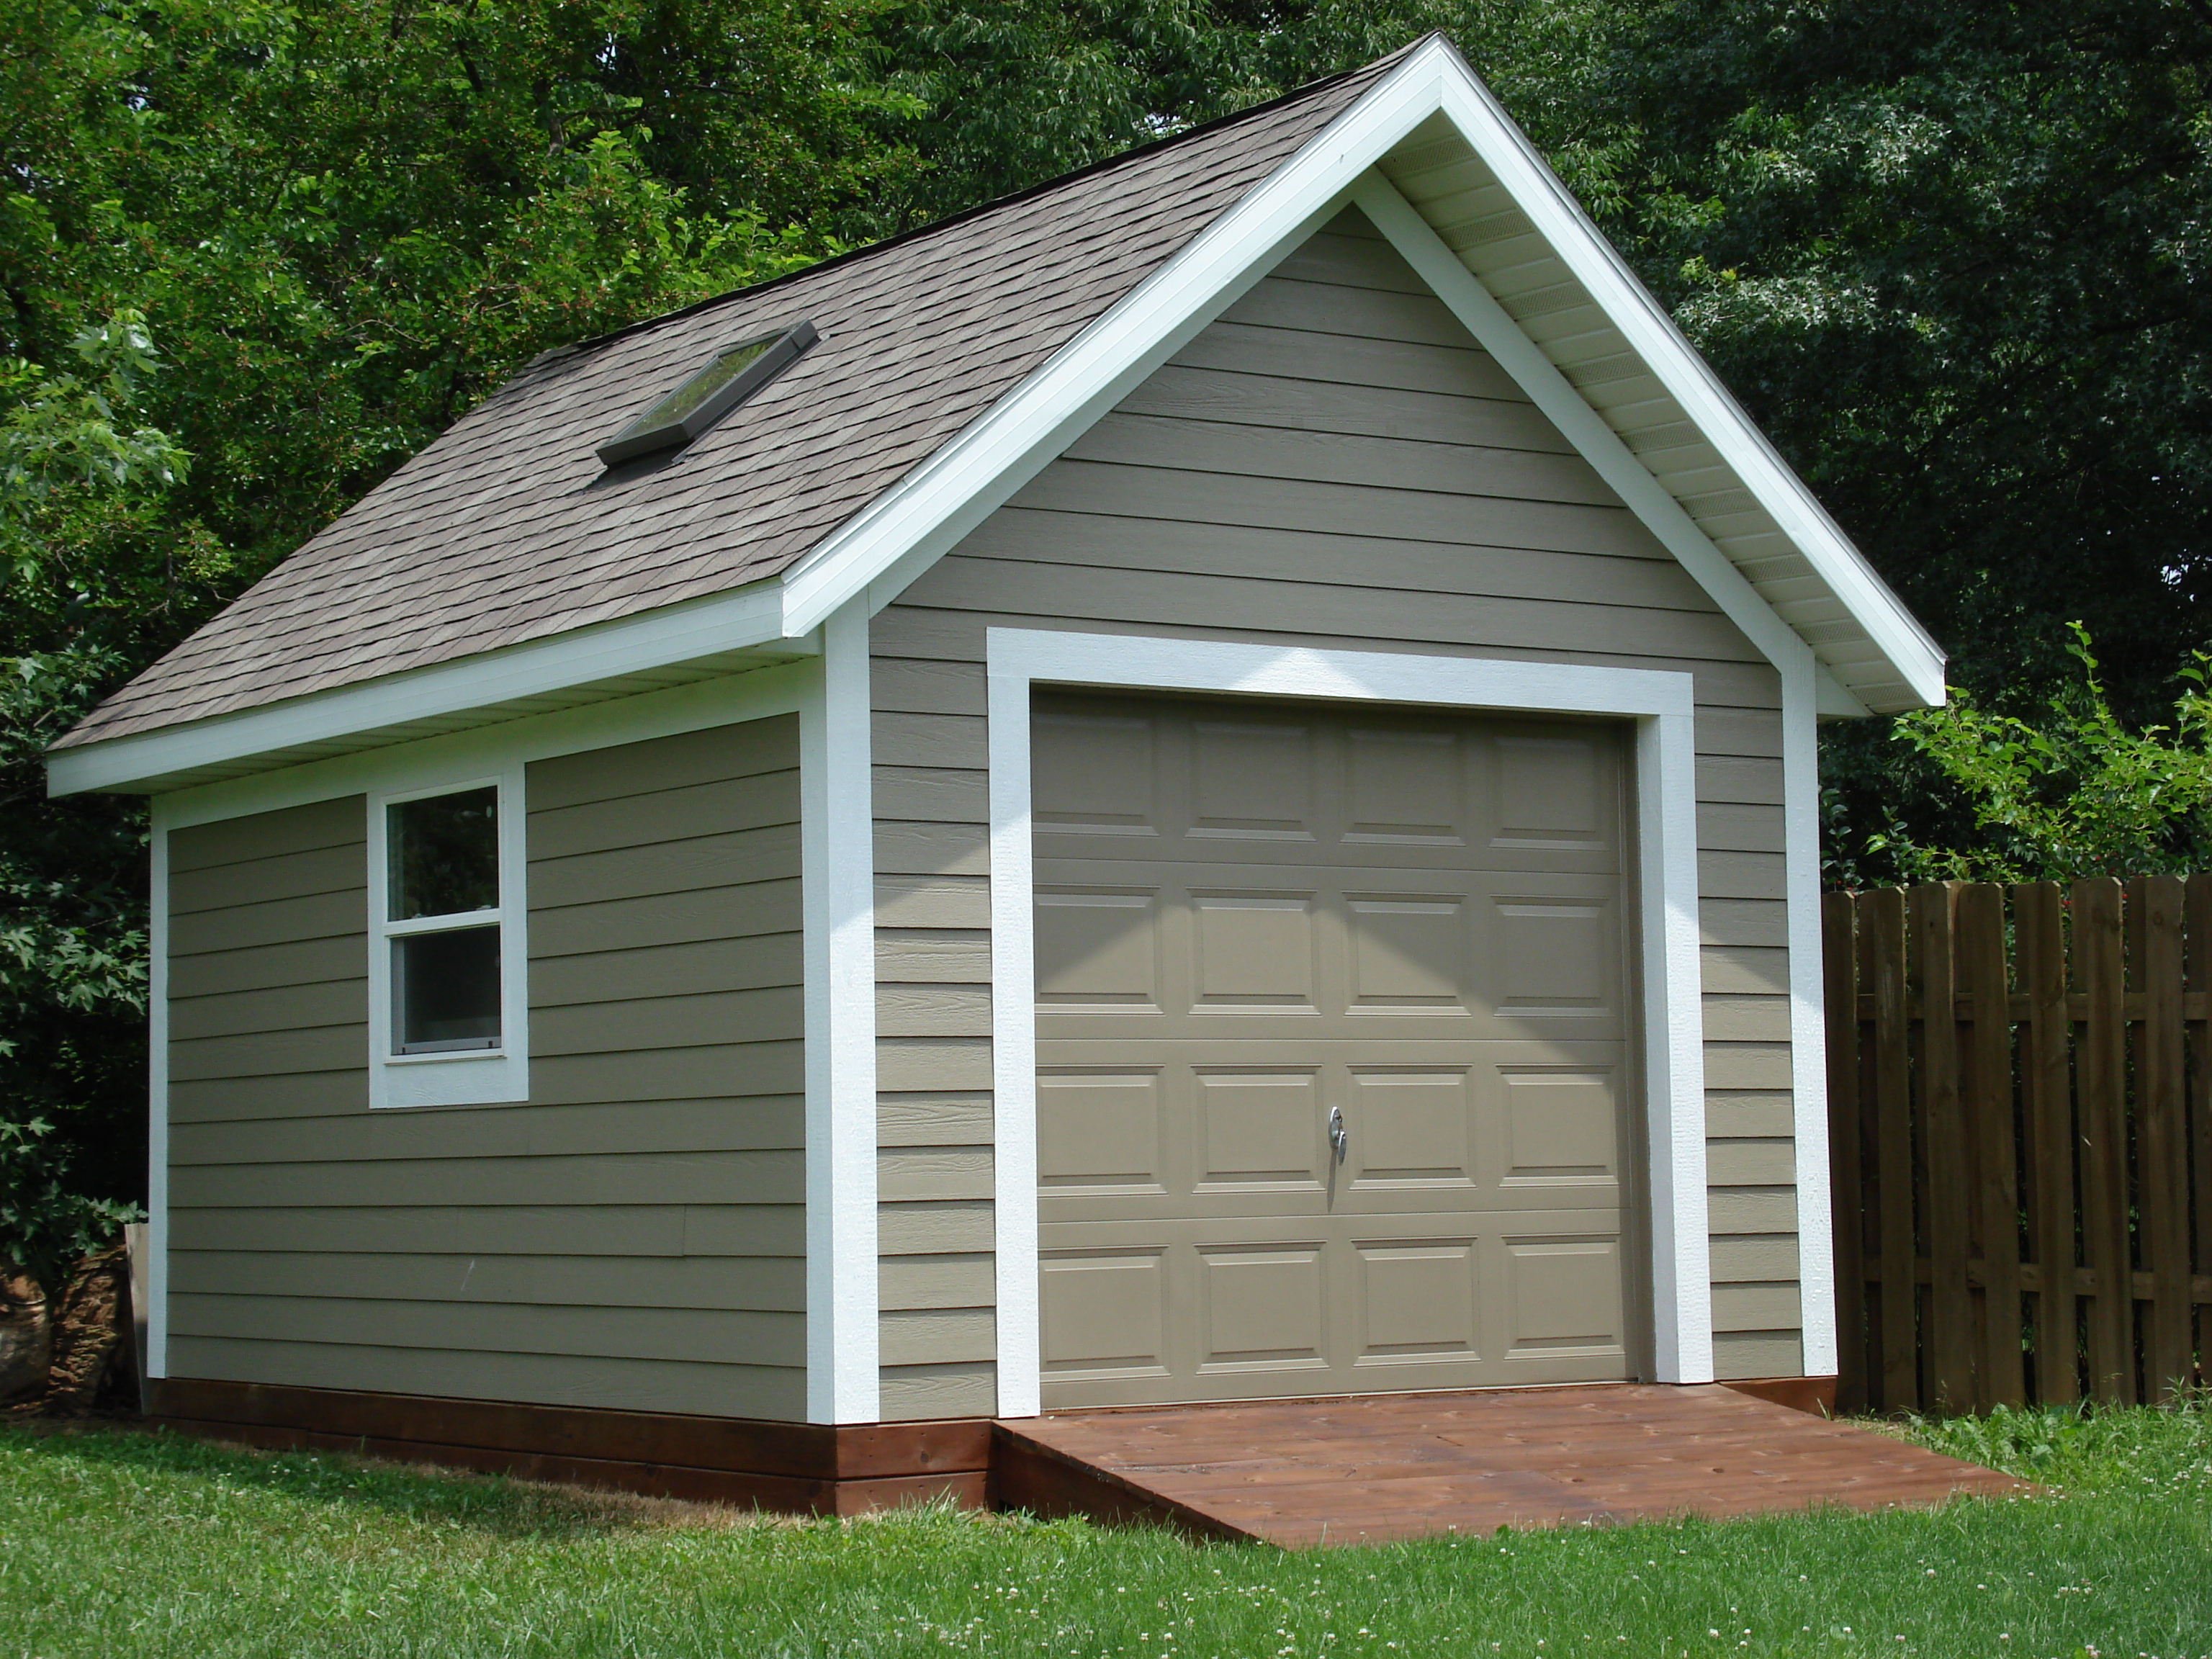 Decks Unlimited Screened Porches Sheds: shed with screened porch